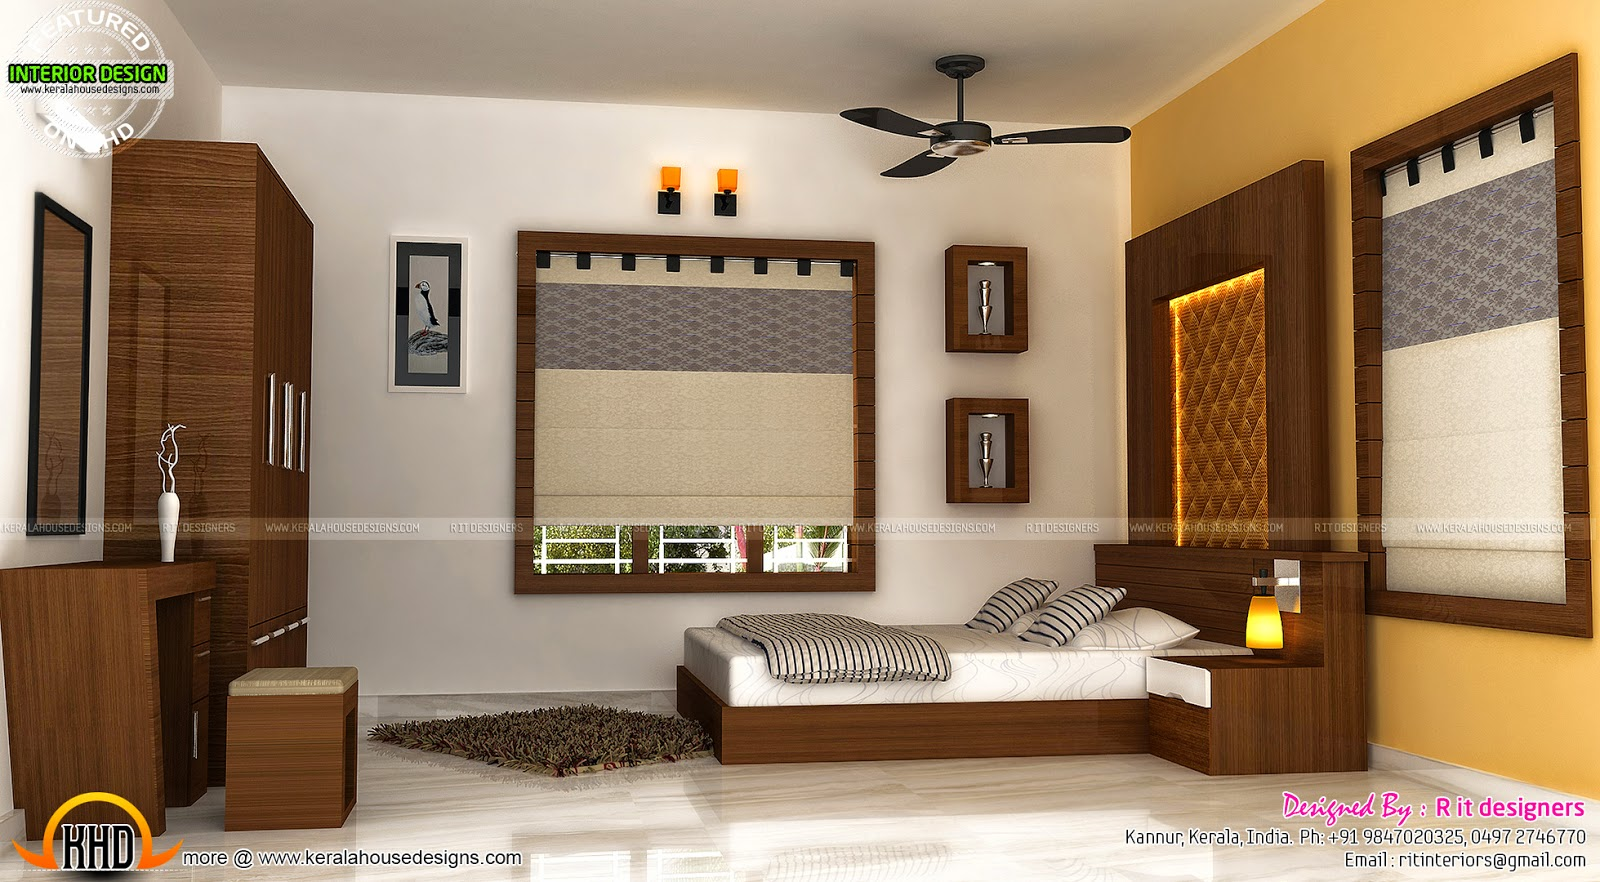 Staircase bedroom dining interiors kerala home design for House design photos interior design